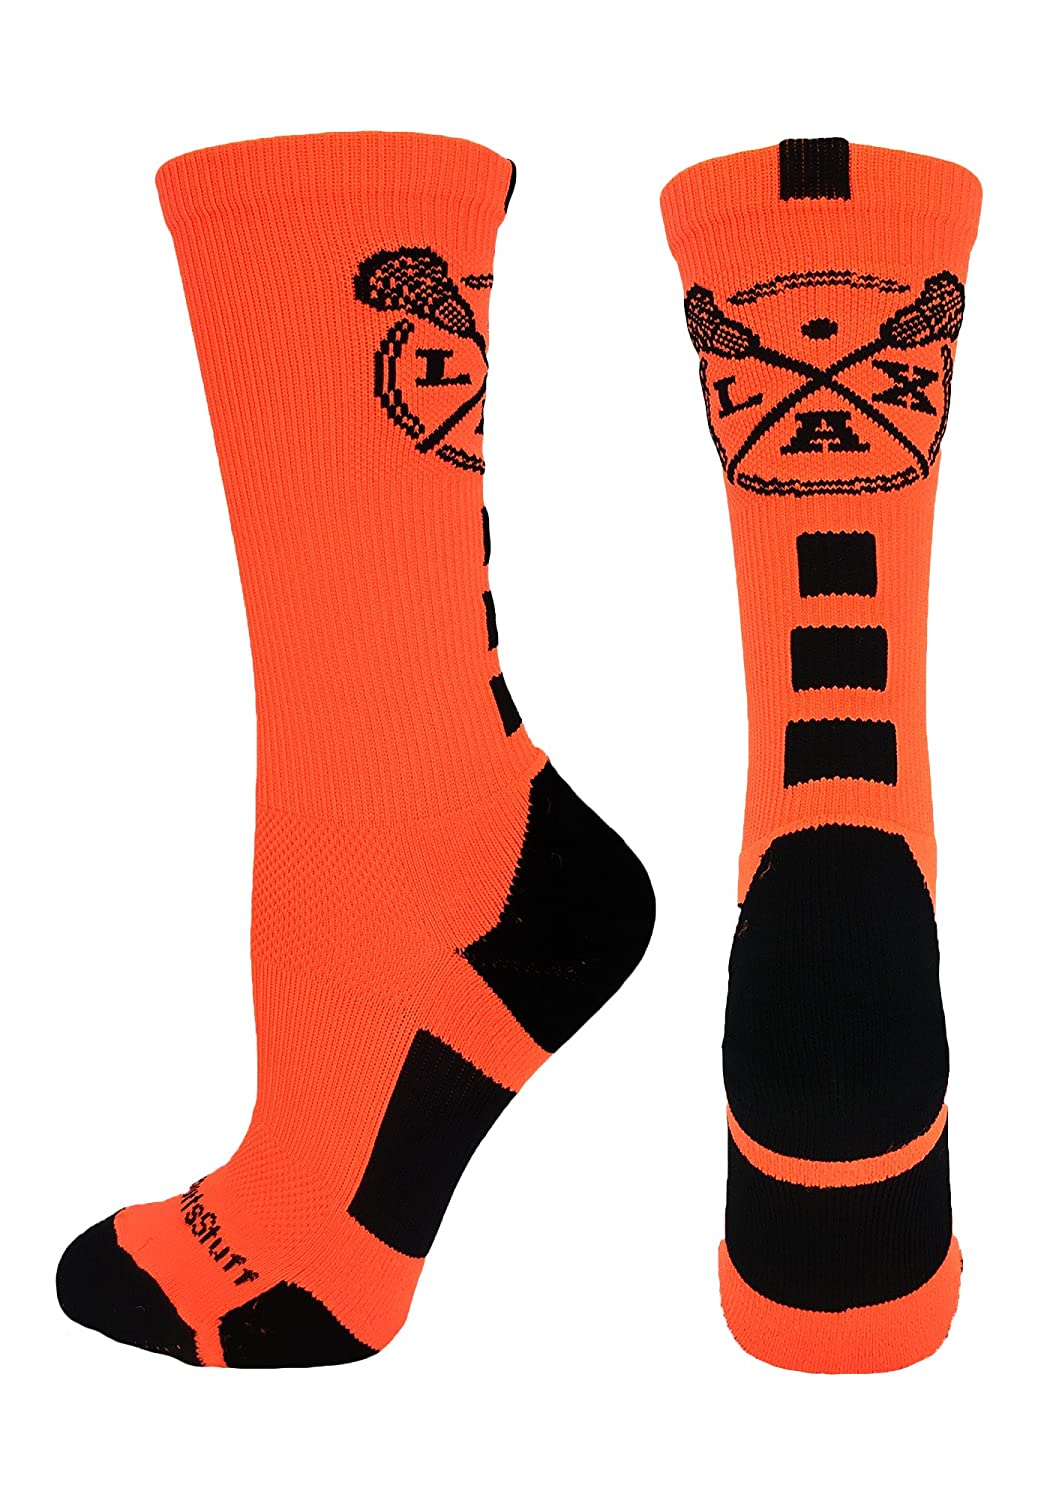 MadSportsStuff Laxラクロスアスレチッククルーソックス B01CRJW432 Neon Orange/Black Large Large|Neon Orange/Black